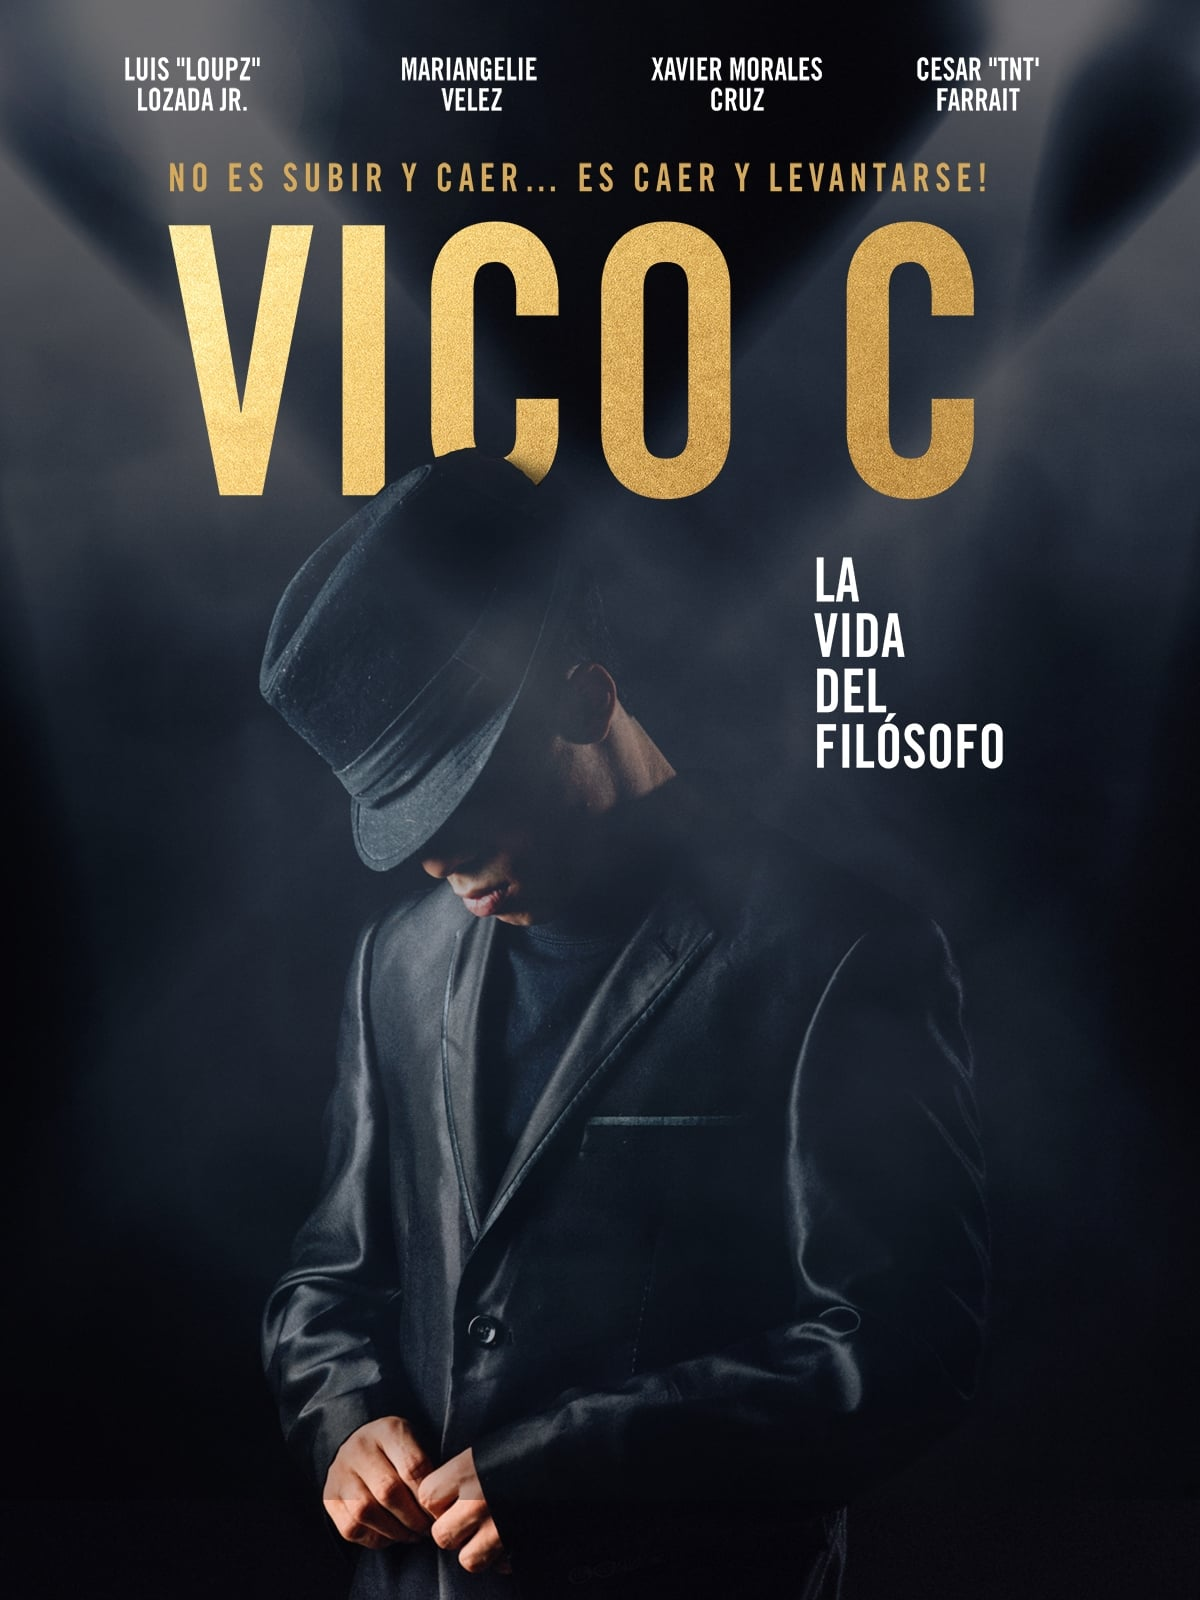 Vico C: The Life Of A Philosopher (2017)